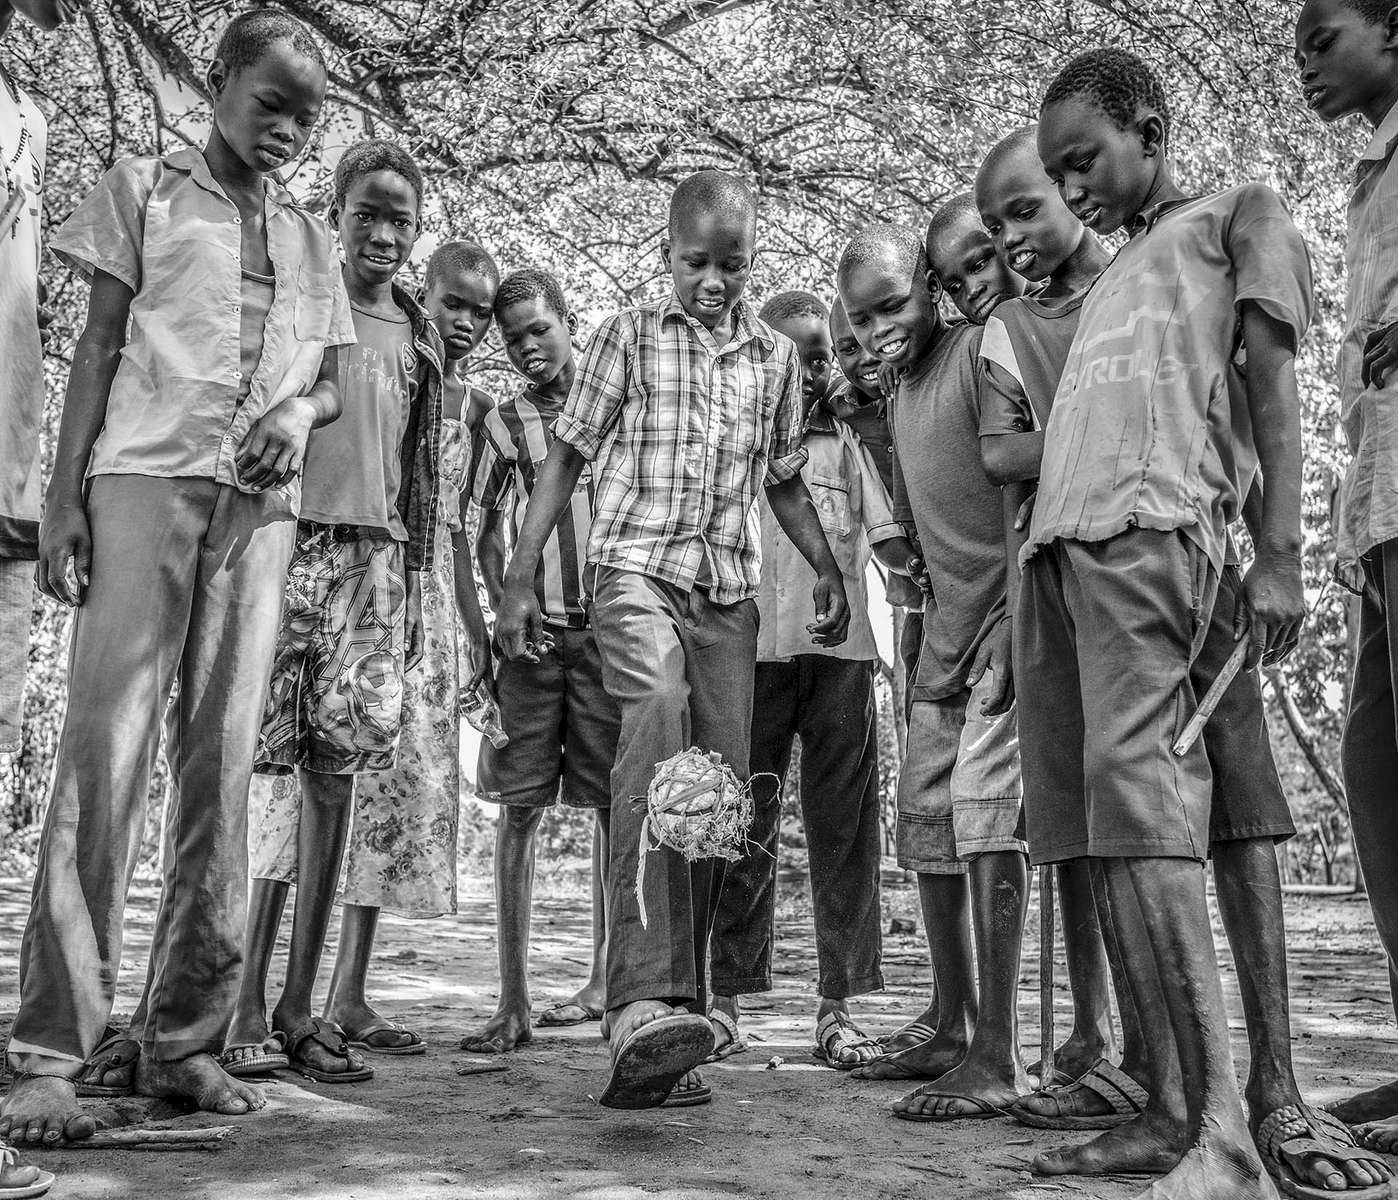 Pupils show their fancy footwork with a home-made football at Nymanzi refugee settlement in Adjumani district in Nothern Uganda 3 May 2017. © Jiro Ose